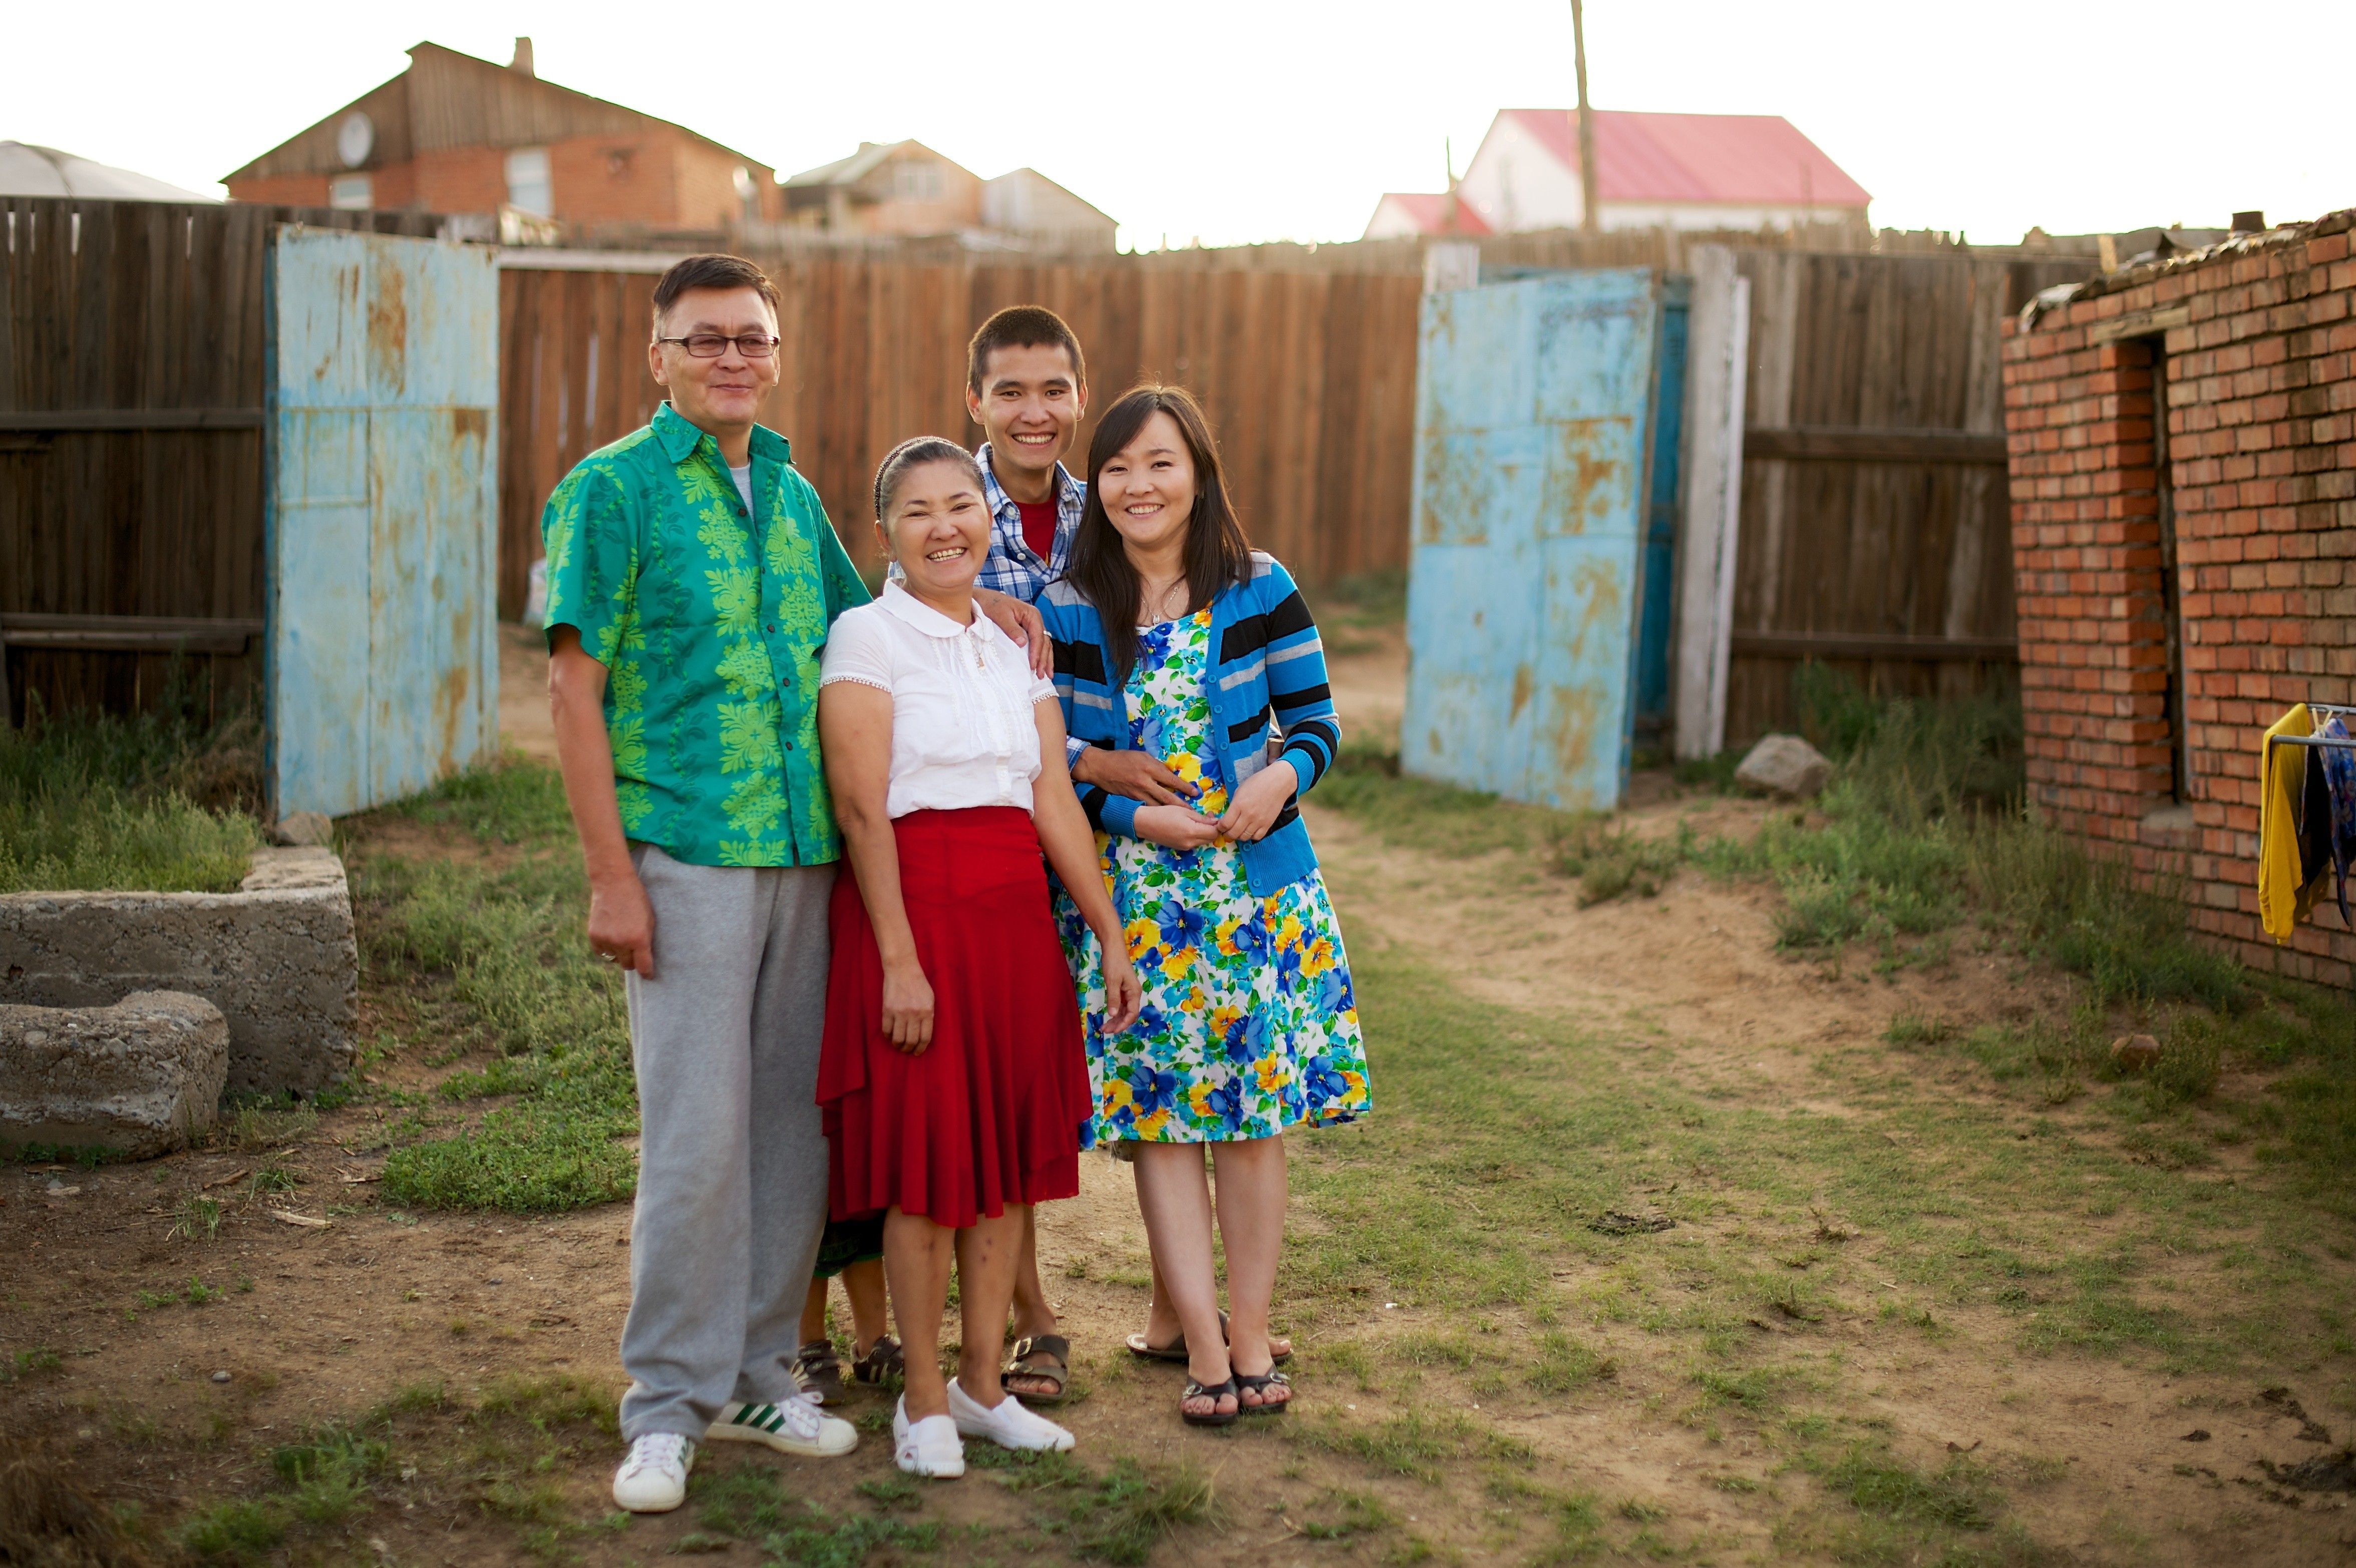 An outdoor portrait of members of a family in Mongolia.